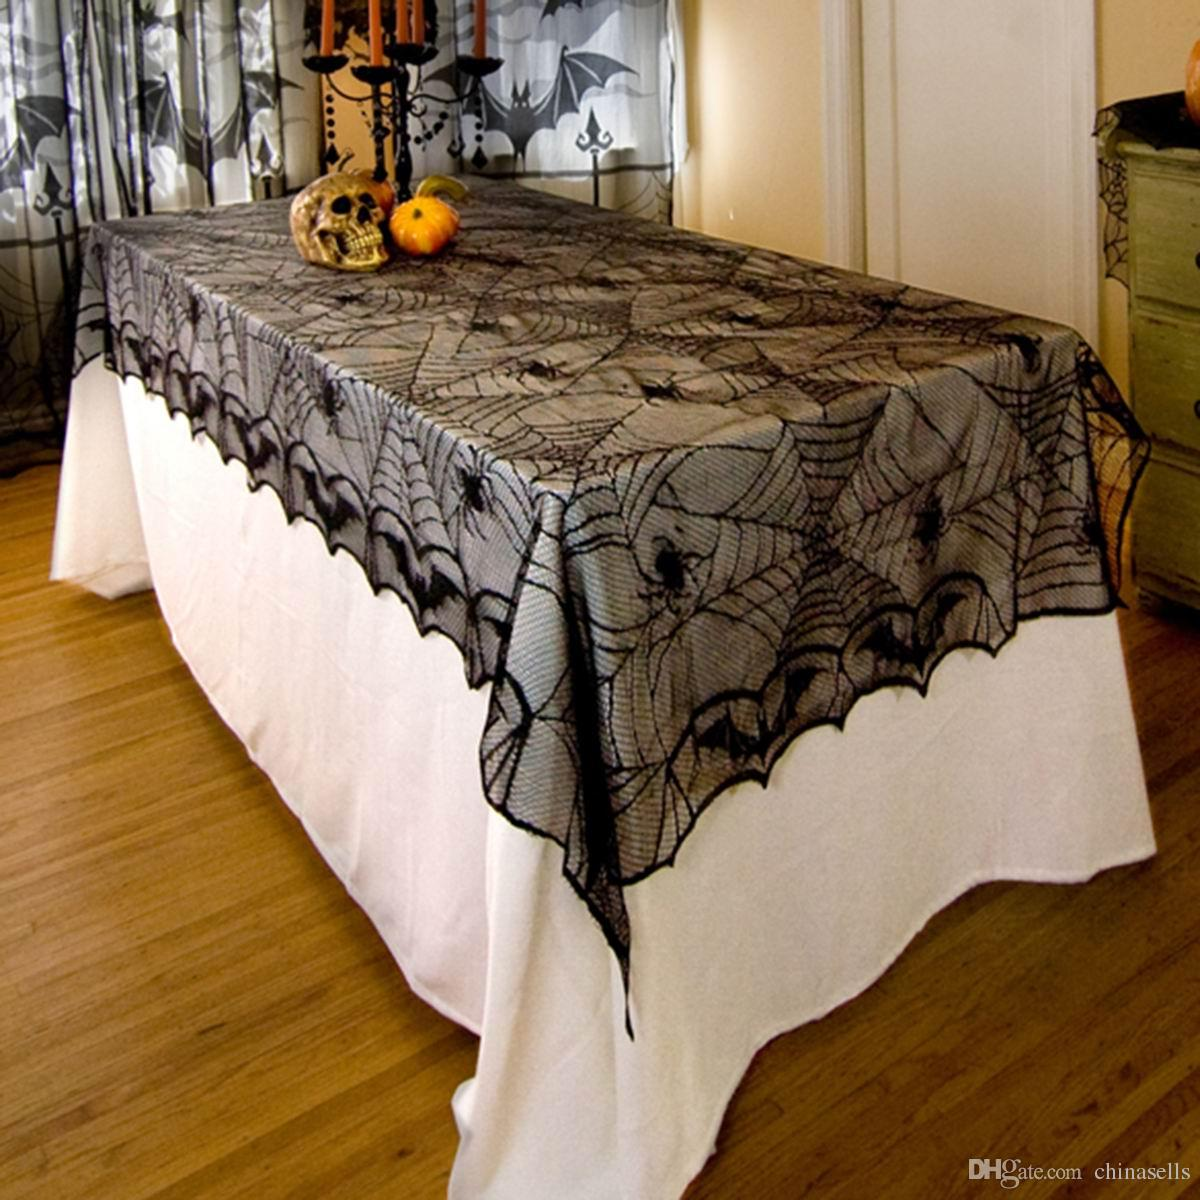 Halloween party decoration haunted bar props home decoration tablecloth Tablecover Black Lace Spider web Table clothes